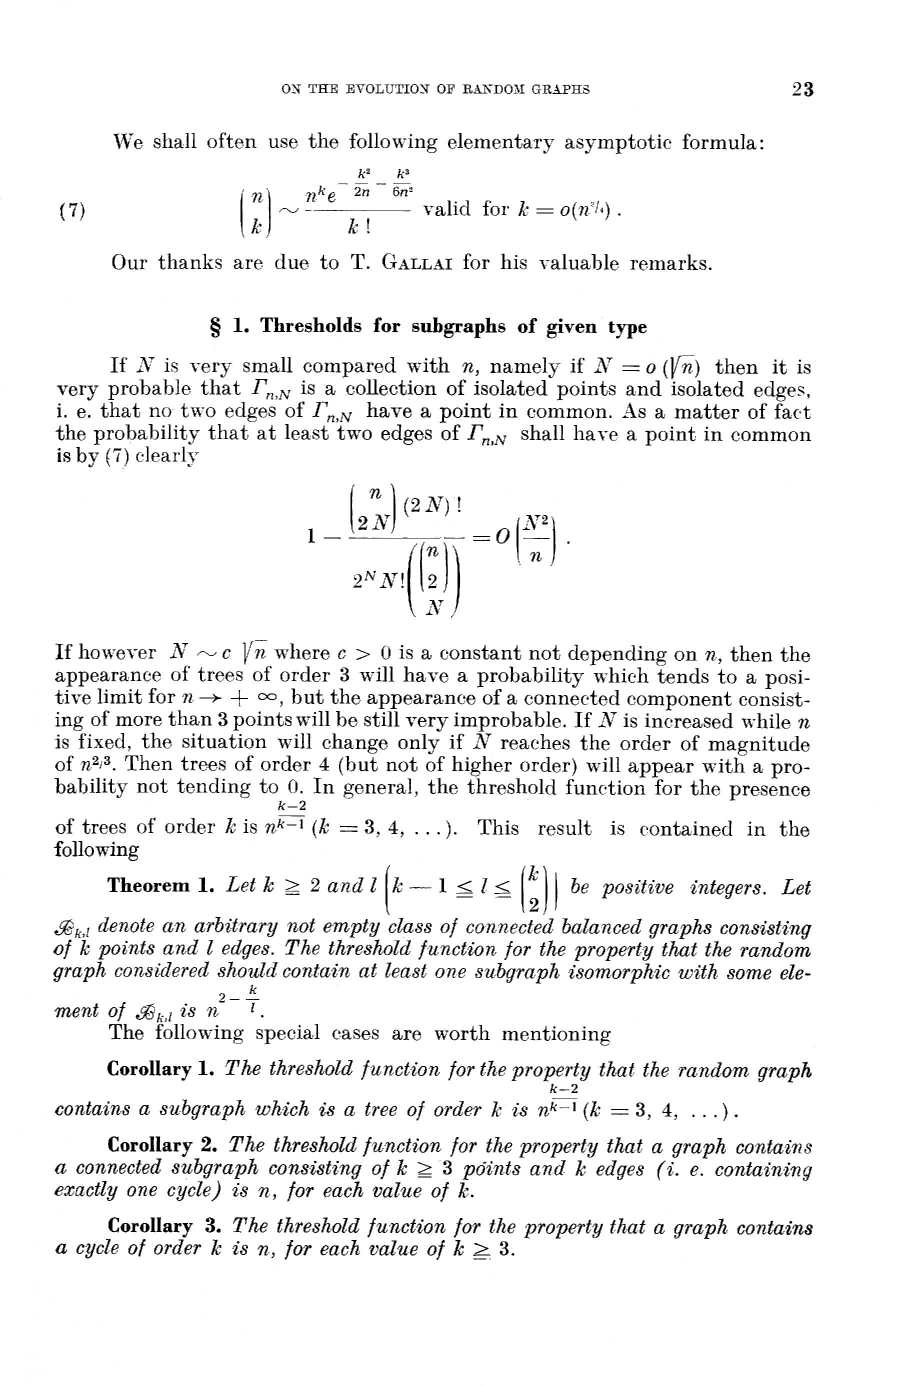 ON THE EVOLUTION OF RANDOM GRAPHS 3 (7) We shall ofte use the followig elemetary asymptotic formula : i! k e k'- 0 6= valid for k = o('l=). k Our thaks are due to T. GALLAI for his valuable remarks.